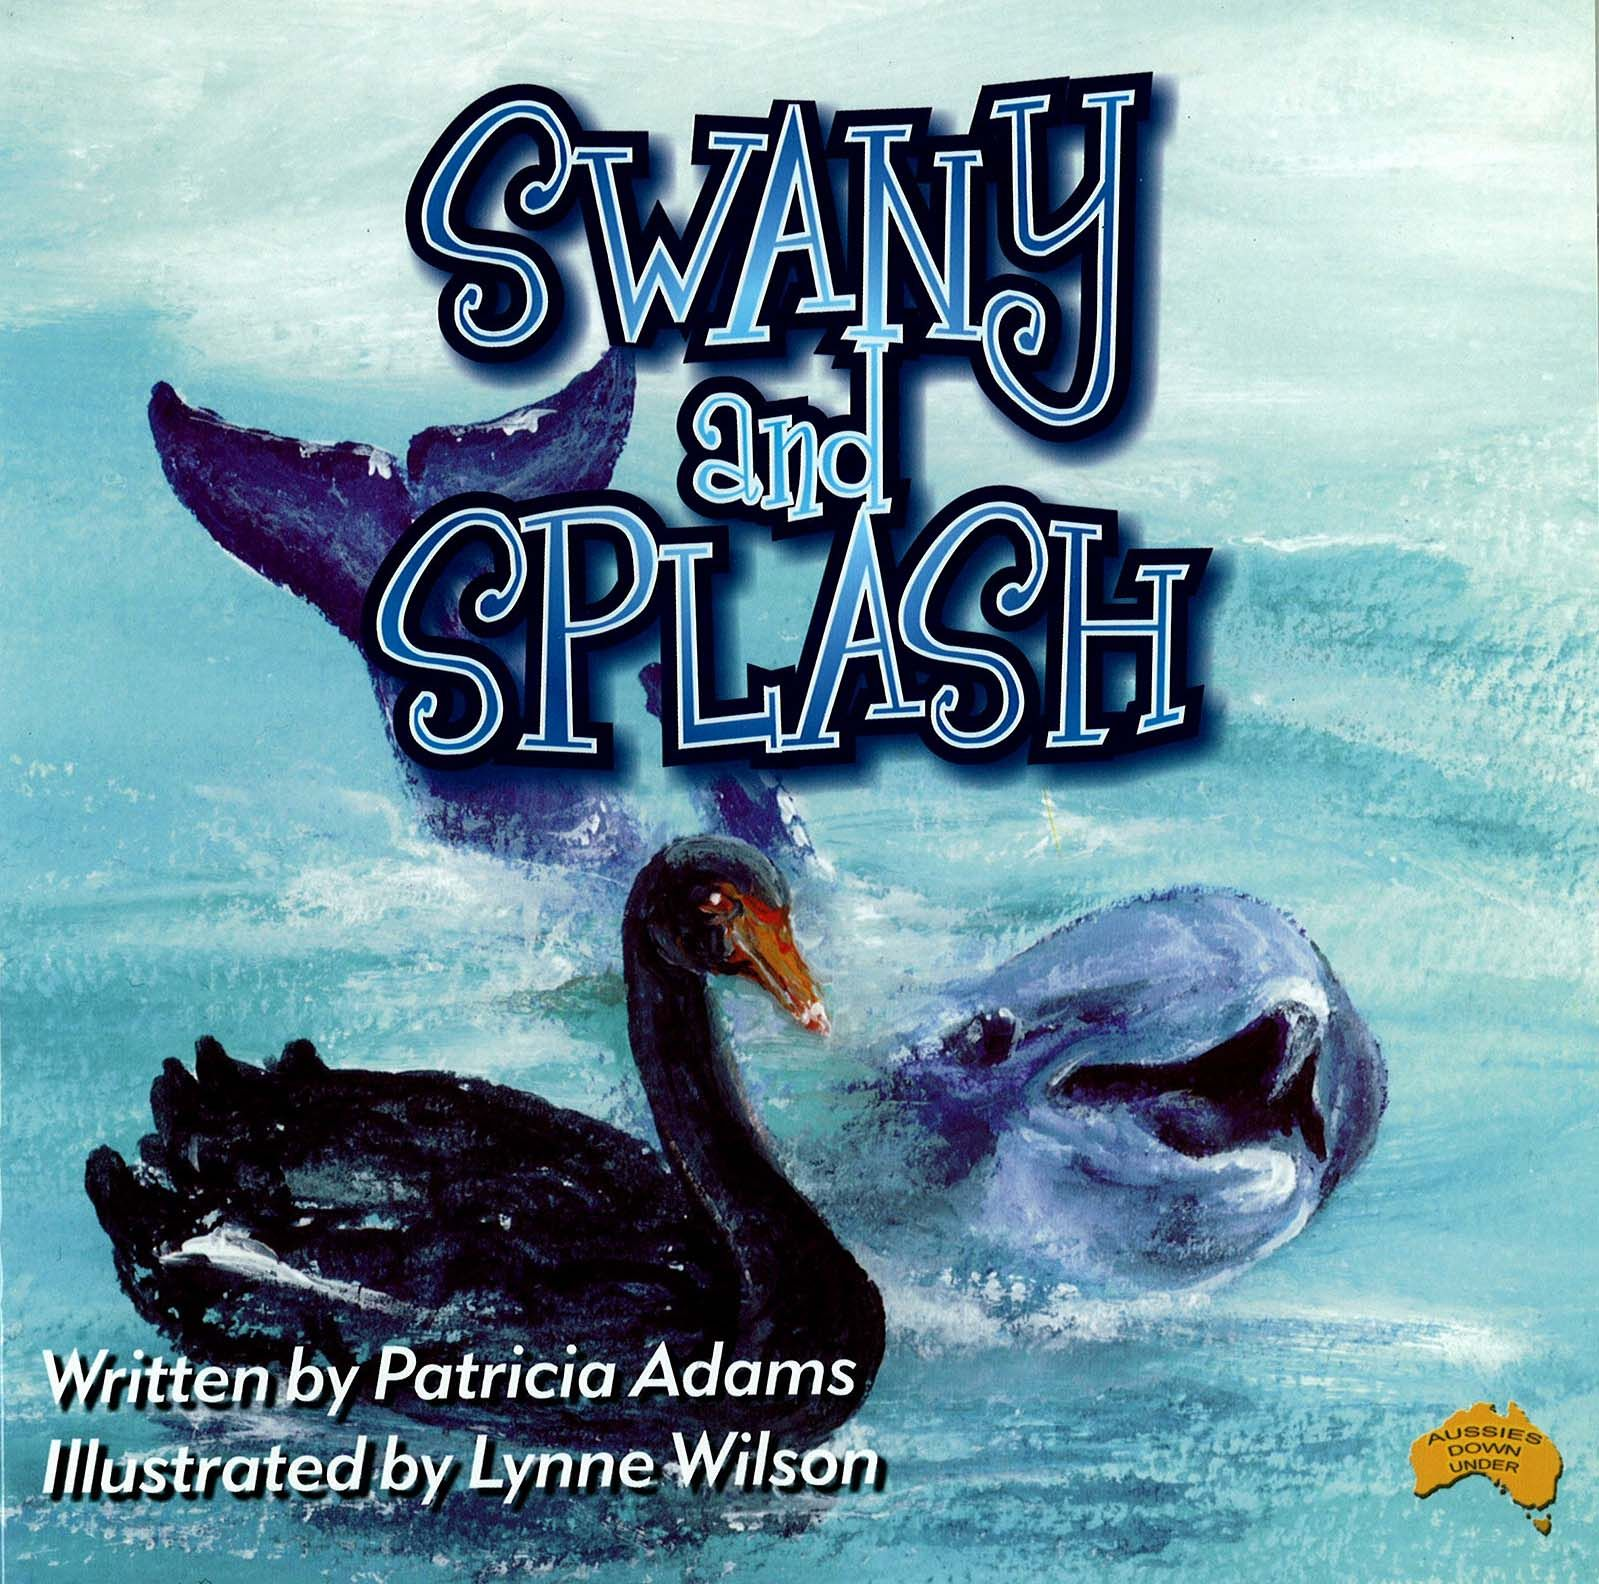 Swany And Splash Is Patricia Adams 6th Book This One Features The  Exquisite Australian Black